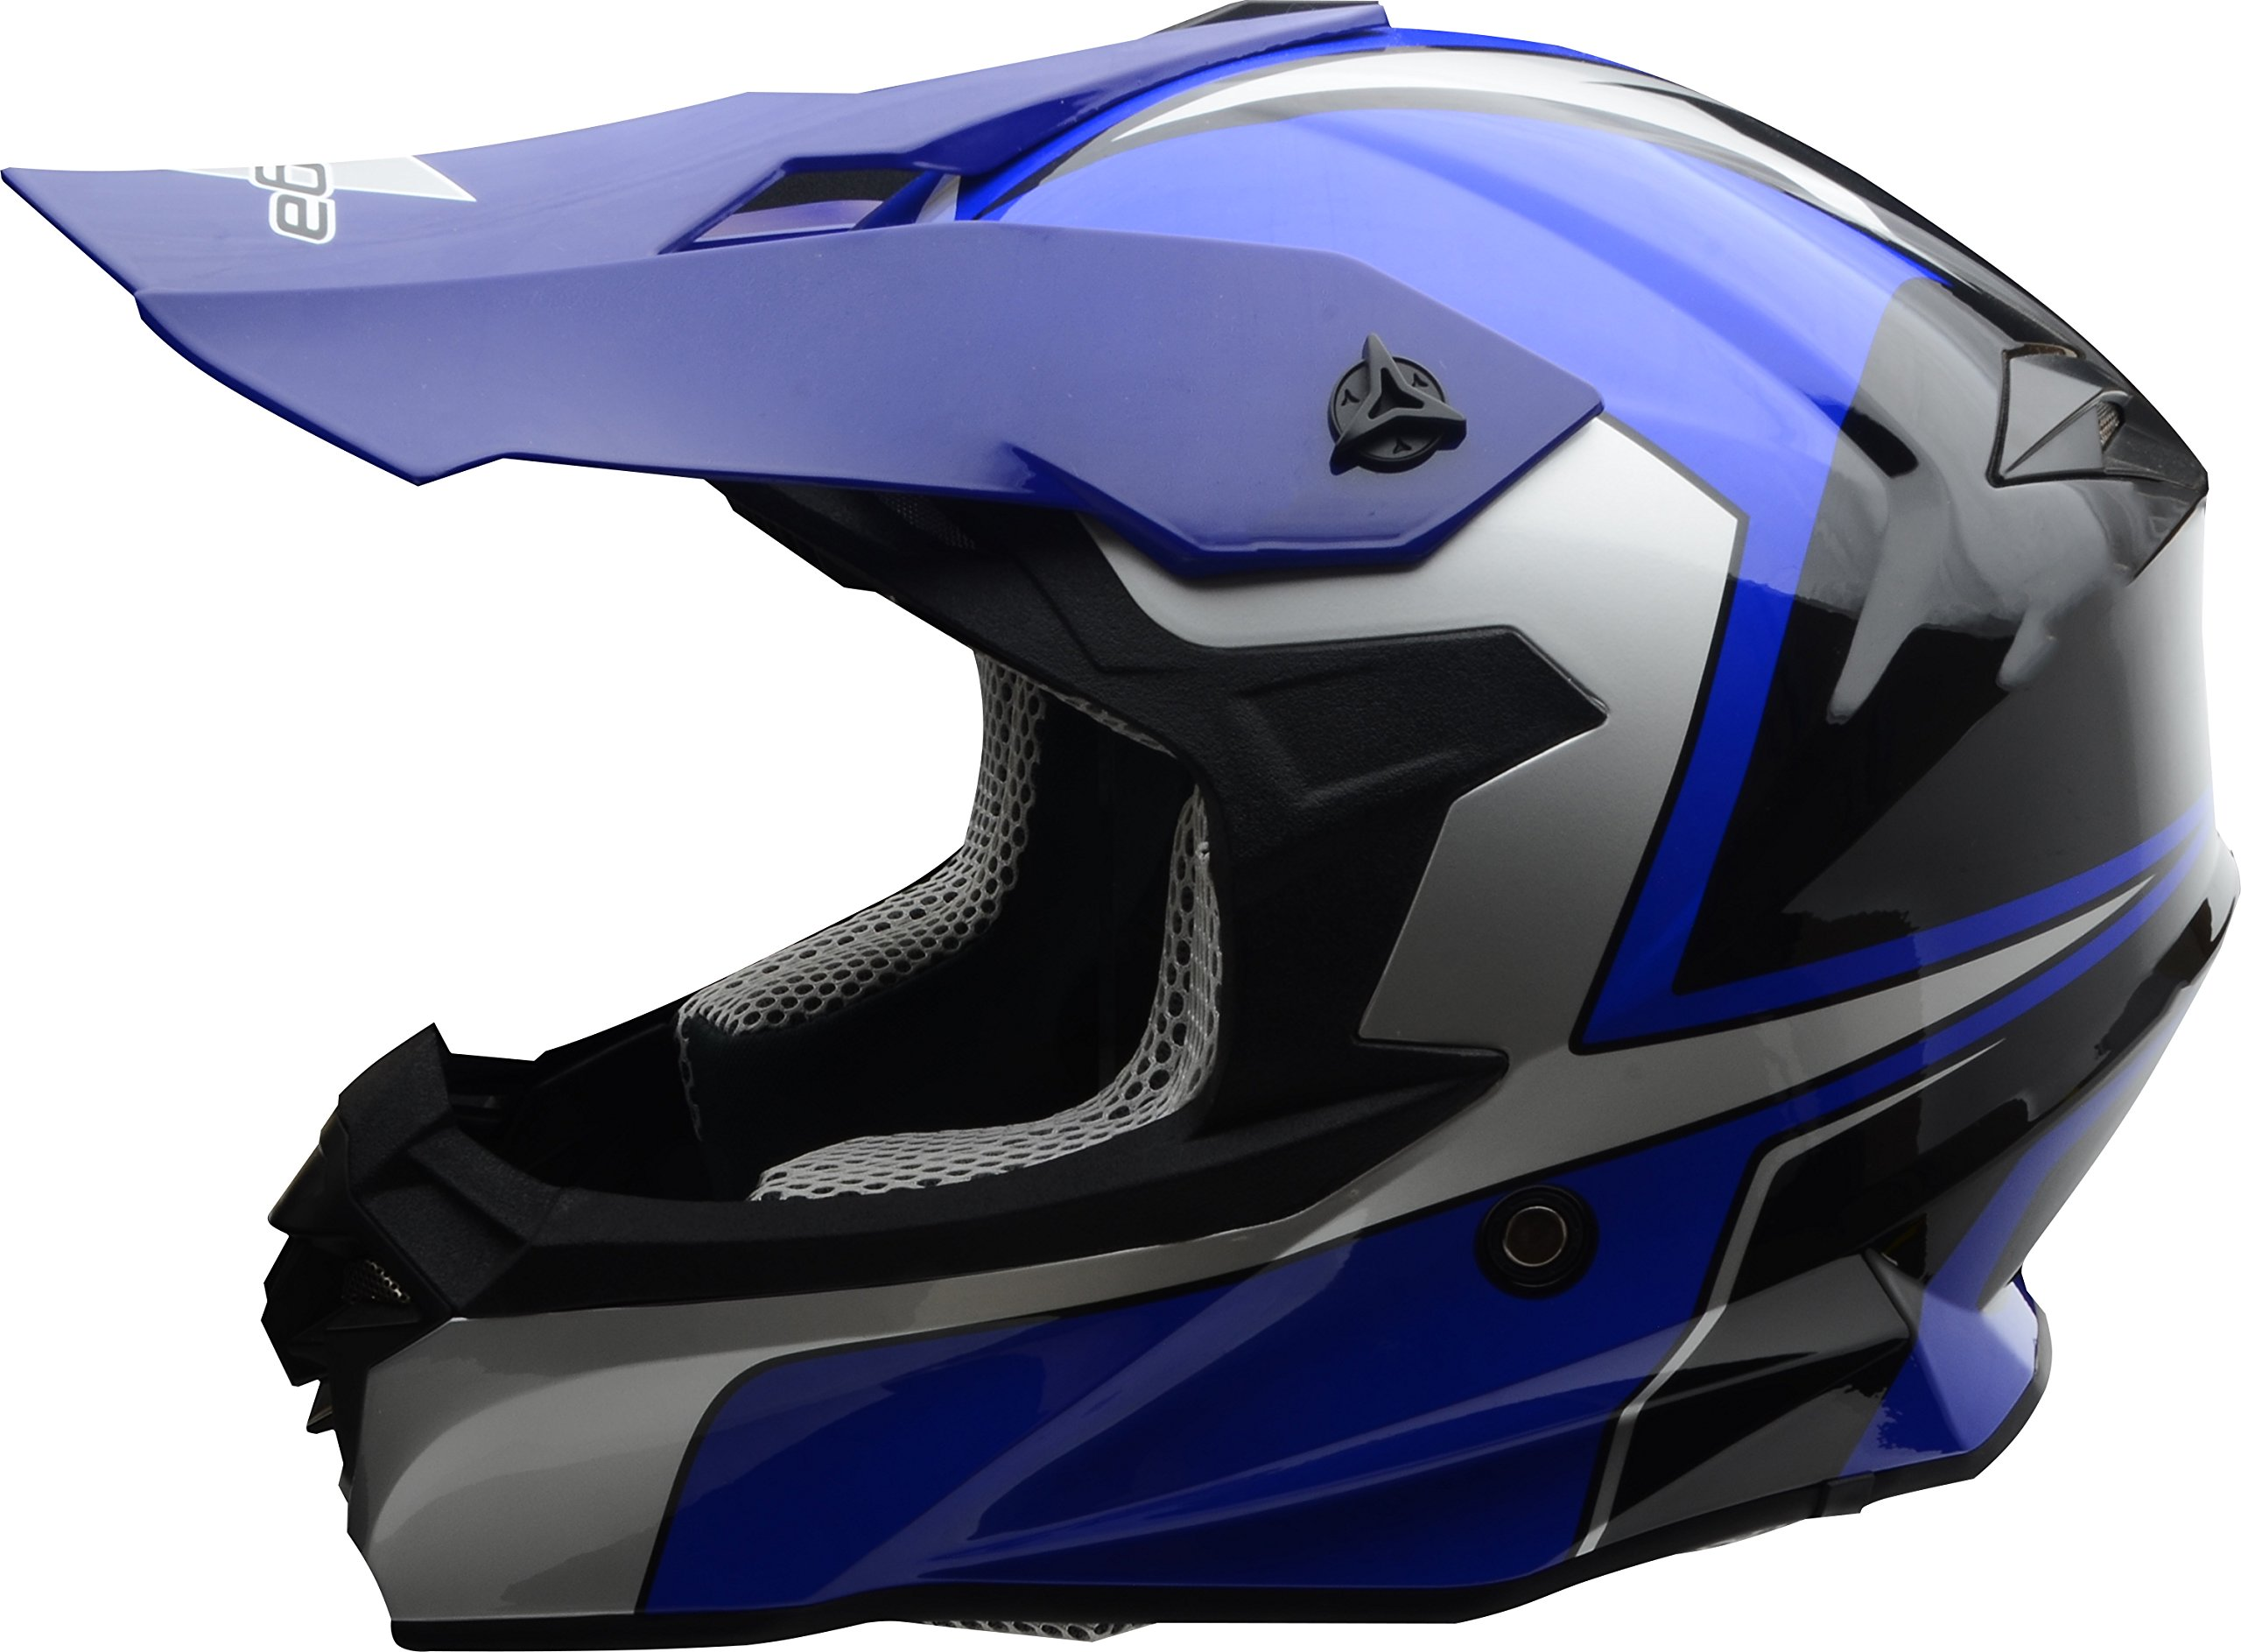 Vega Helmets VF1 Lightweight Dirt Bike Helmet – Off-Road Full Face Helmet for ATV Motocross MX Enduro Quad Sport, 5 Year Warranty (Limited Edition Blue,Large)